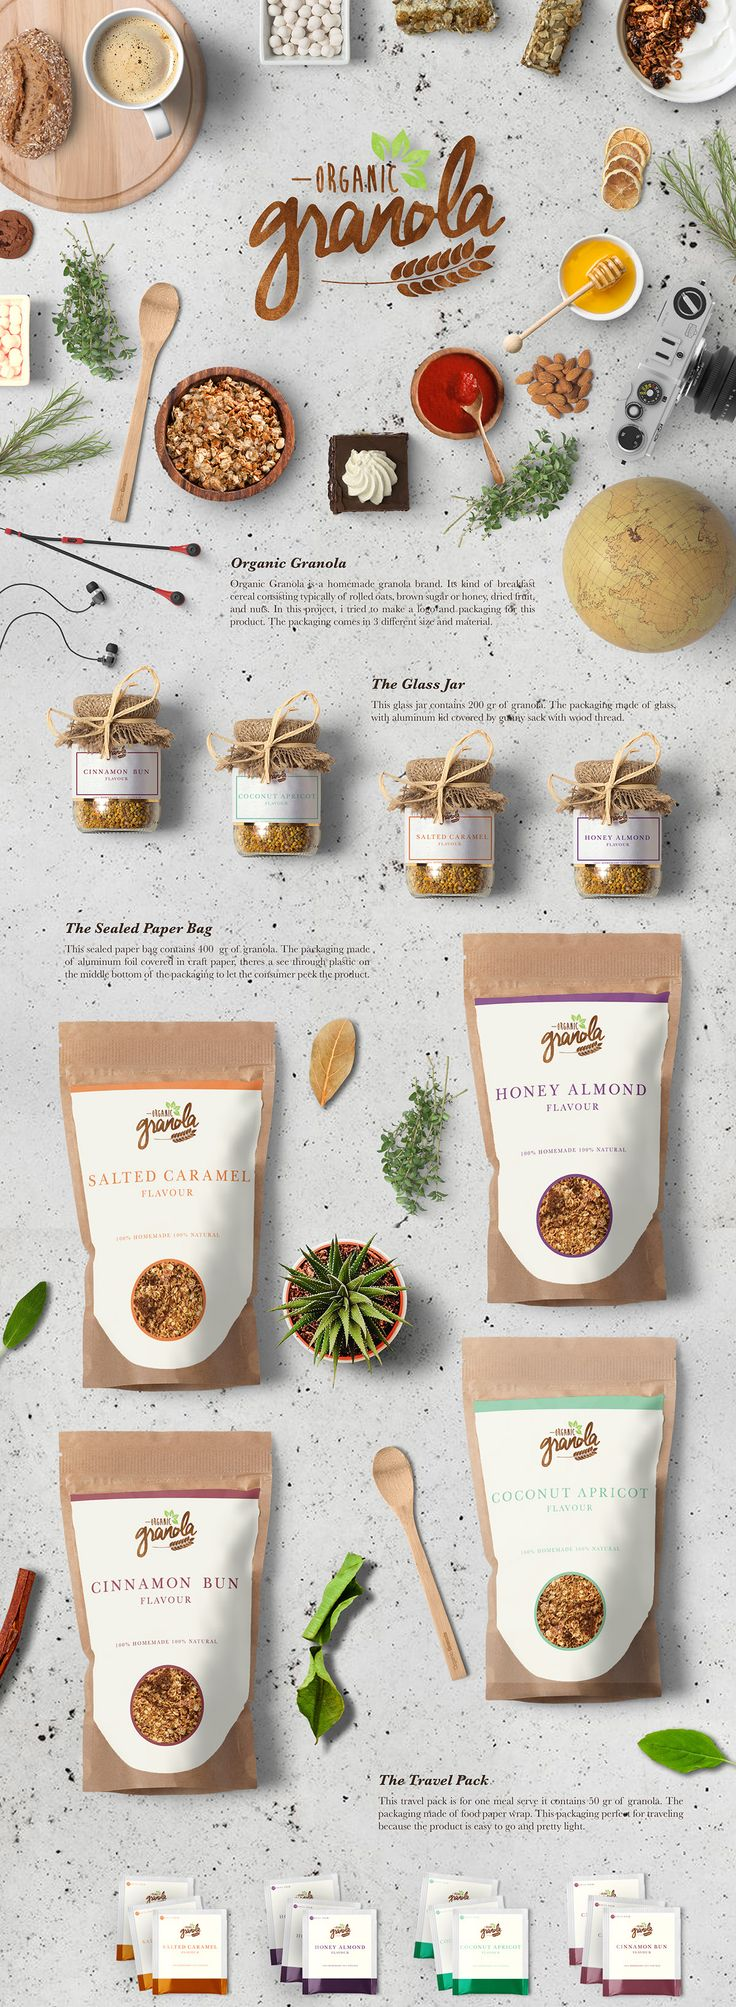 This is a branding project about a food brand. Granola is a kind of breakfast cereal consisting typically of rolled oats, brown sugar or honey, dried fruit, and nuts. The target of this brand is for young adults.